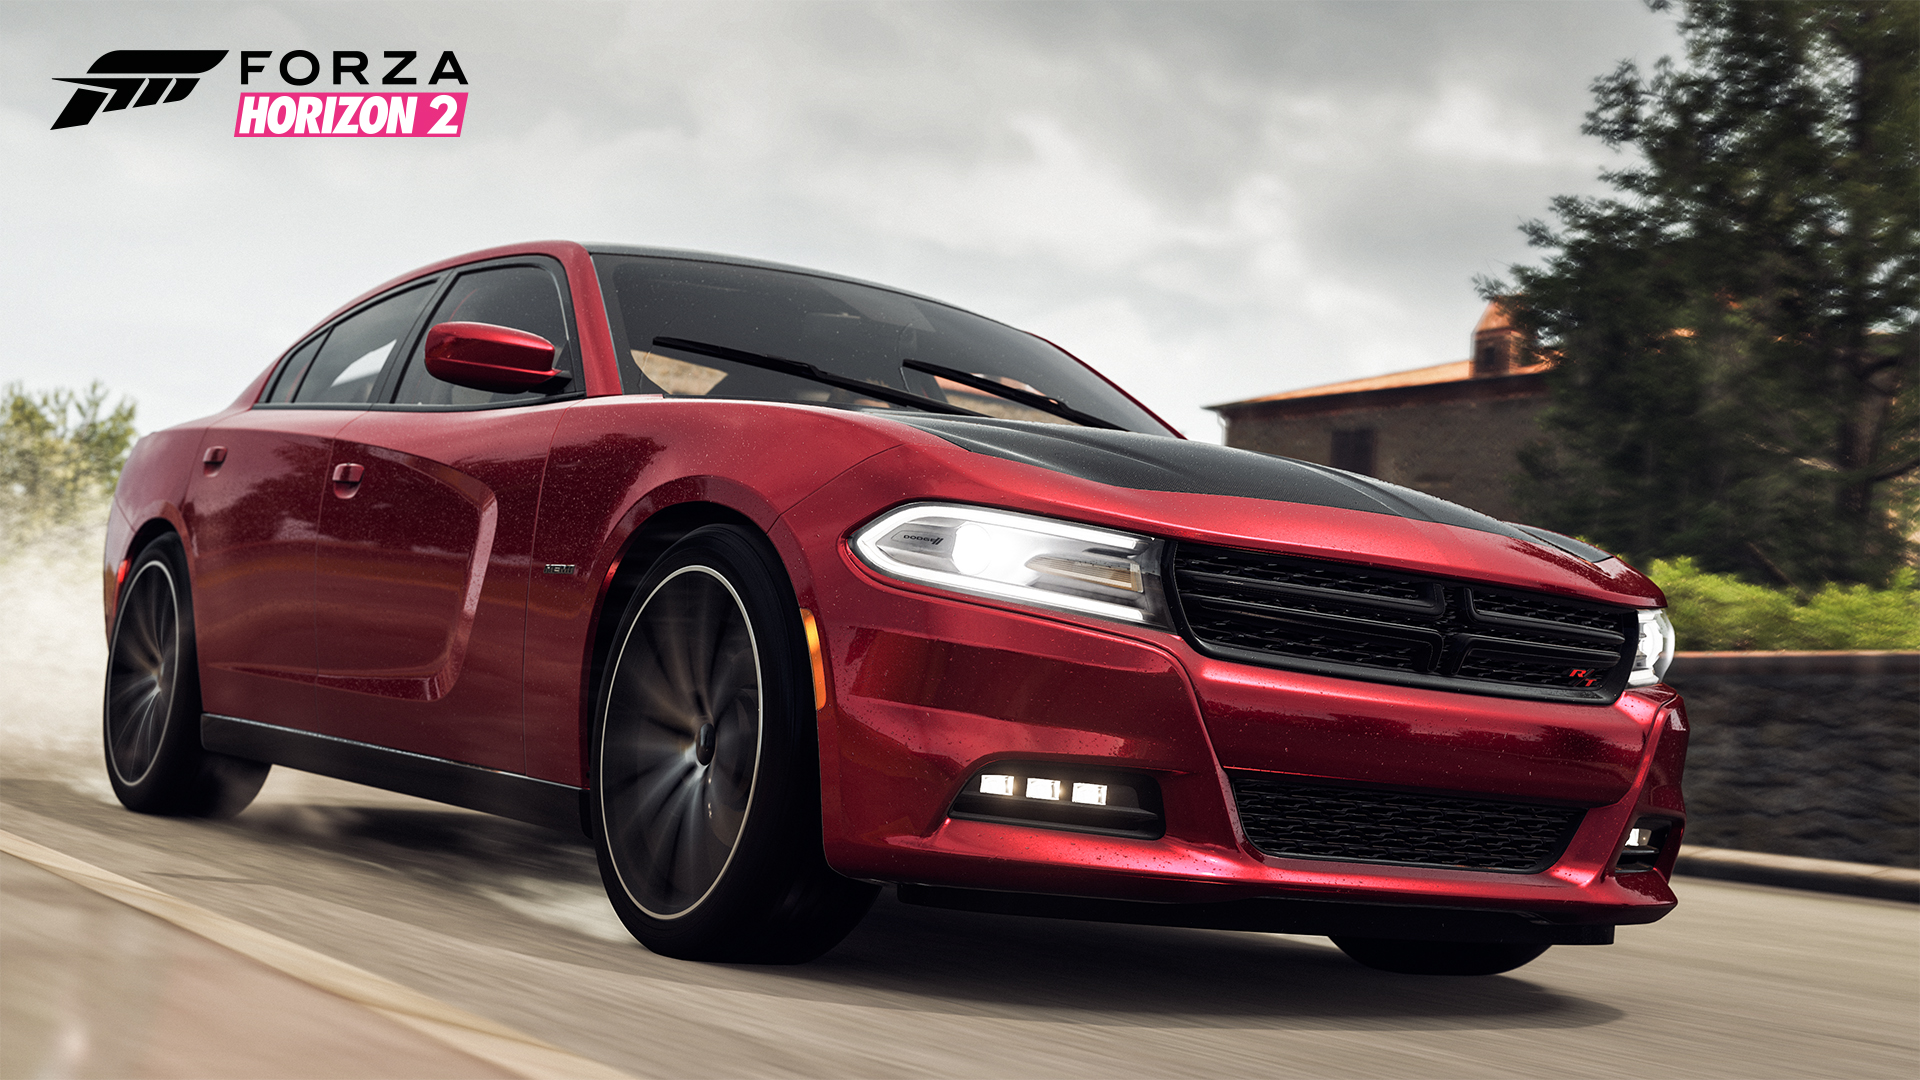 Dodge Charger R/T Fast & Furious Edition (2015)